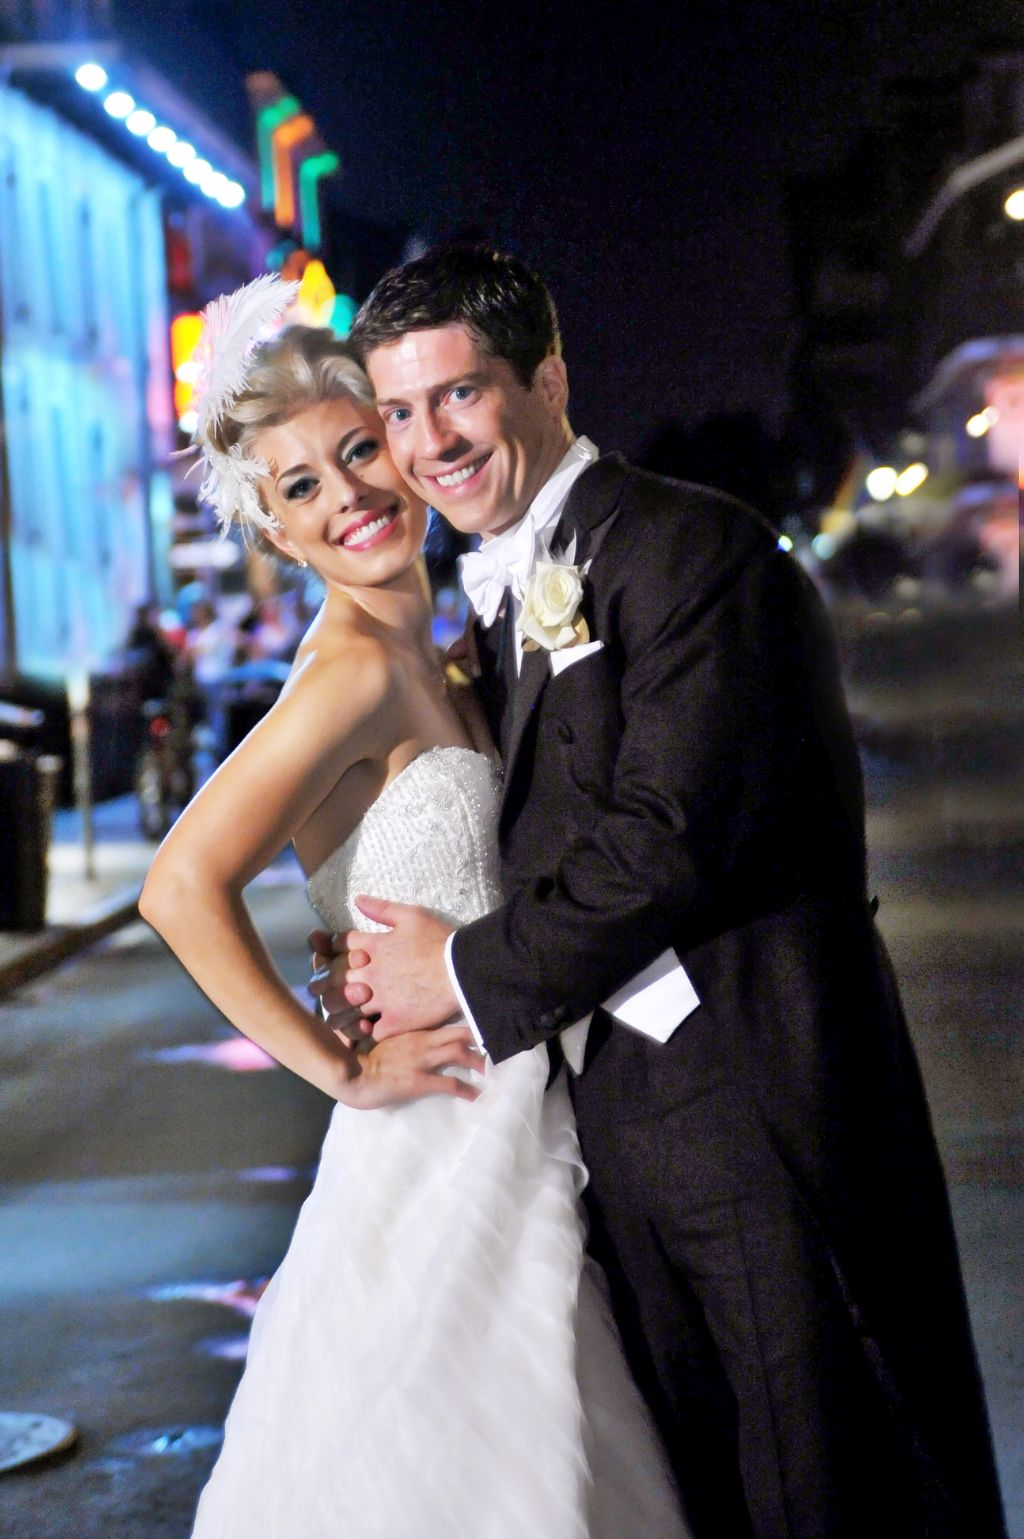 Stunning Christian couple hug in a street after marrying